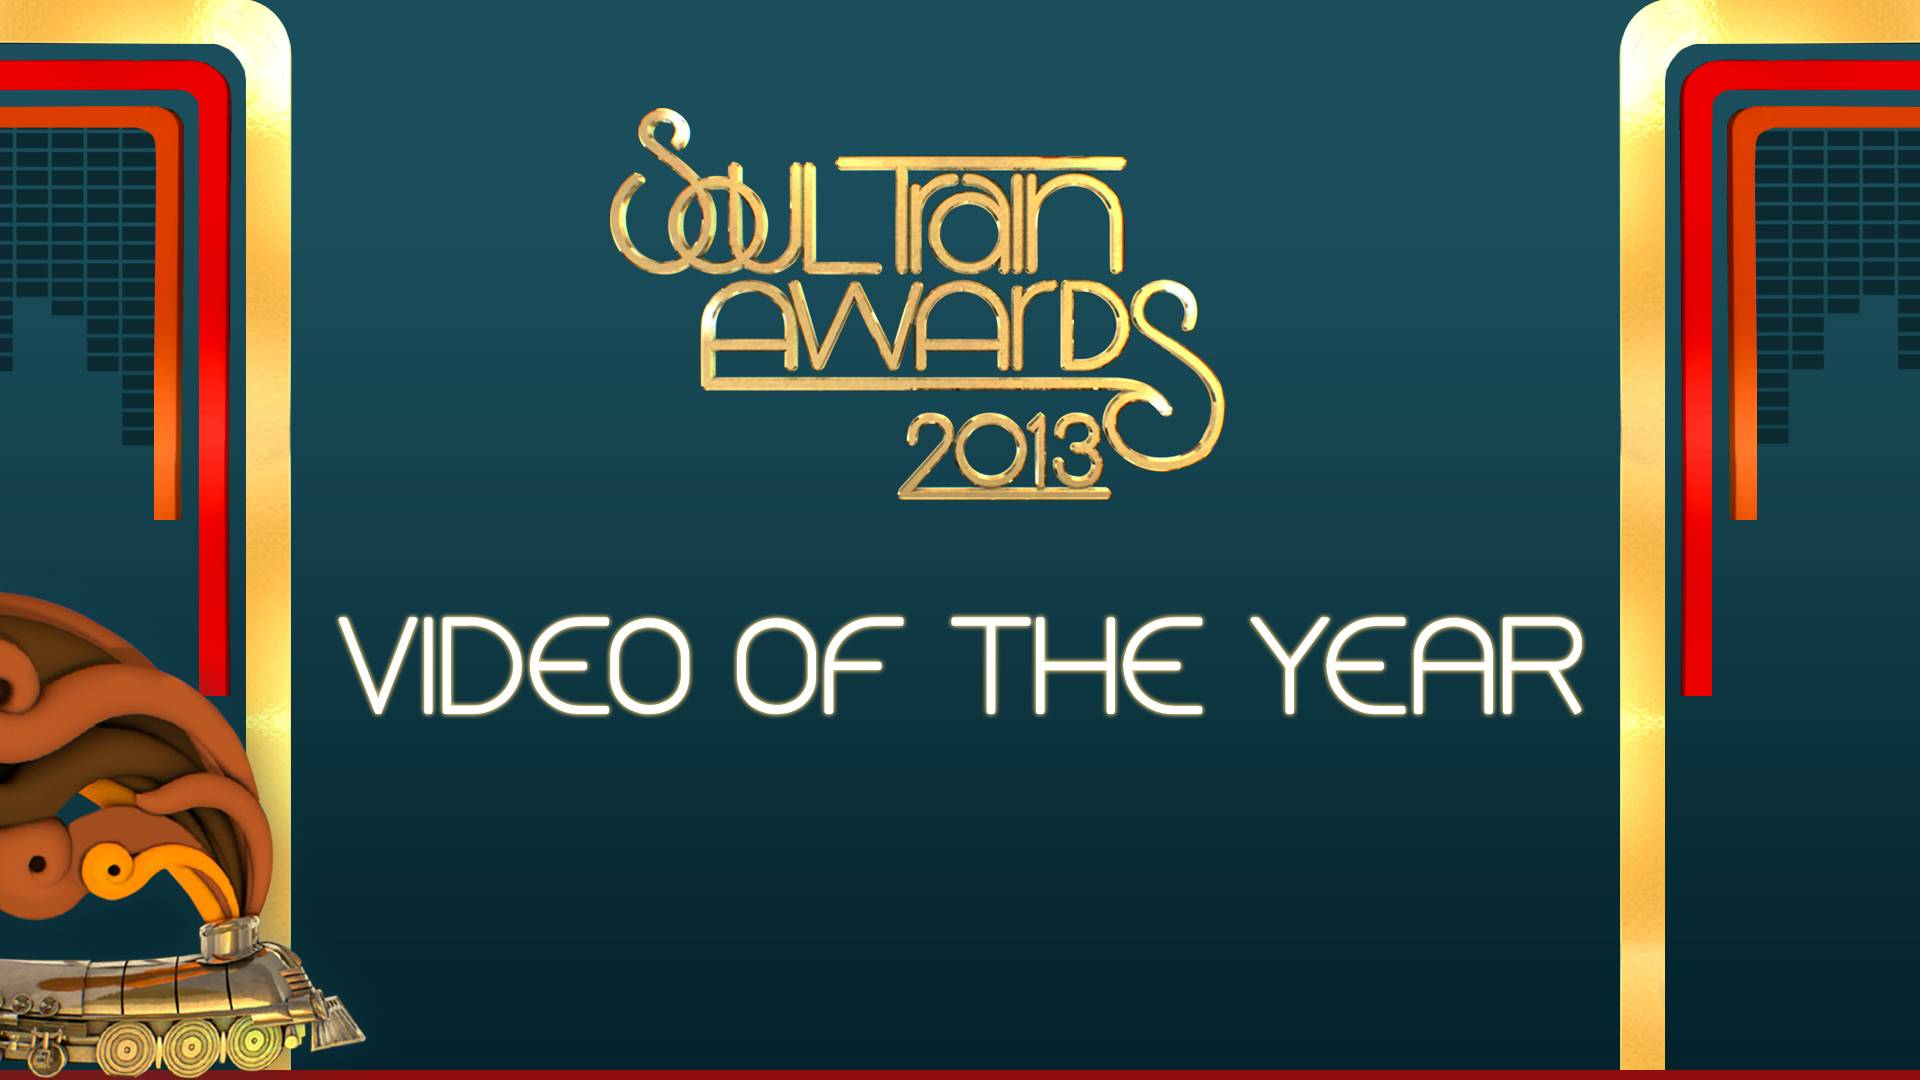 Video Of The Year